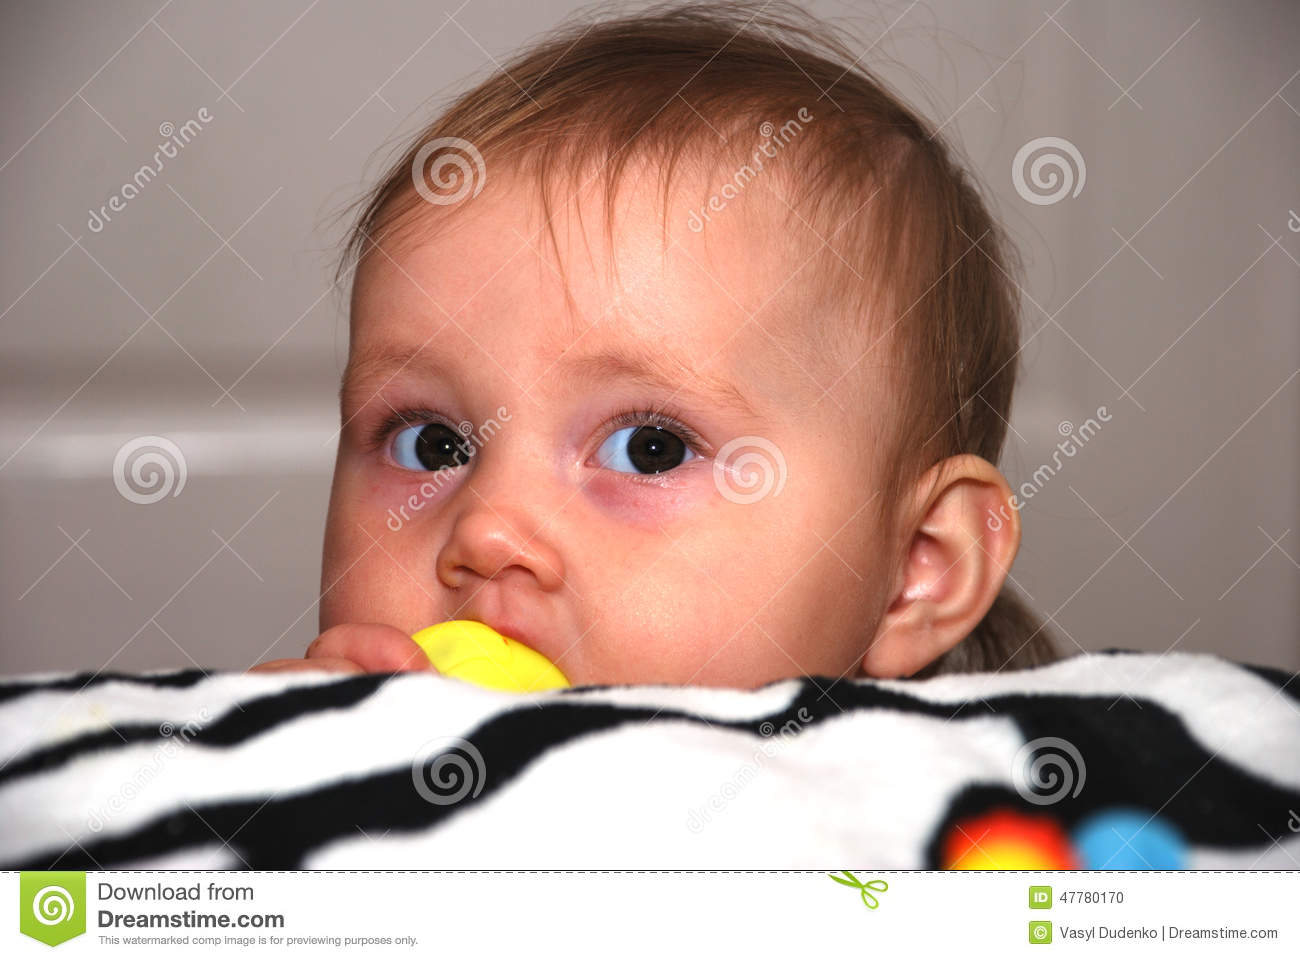 Funny Looking Baby Stock Photo - Image: 47780170